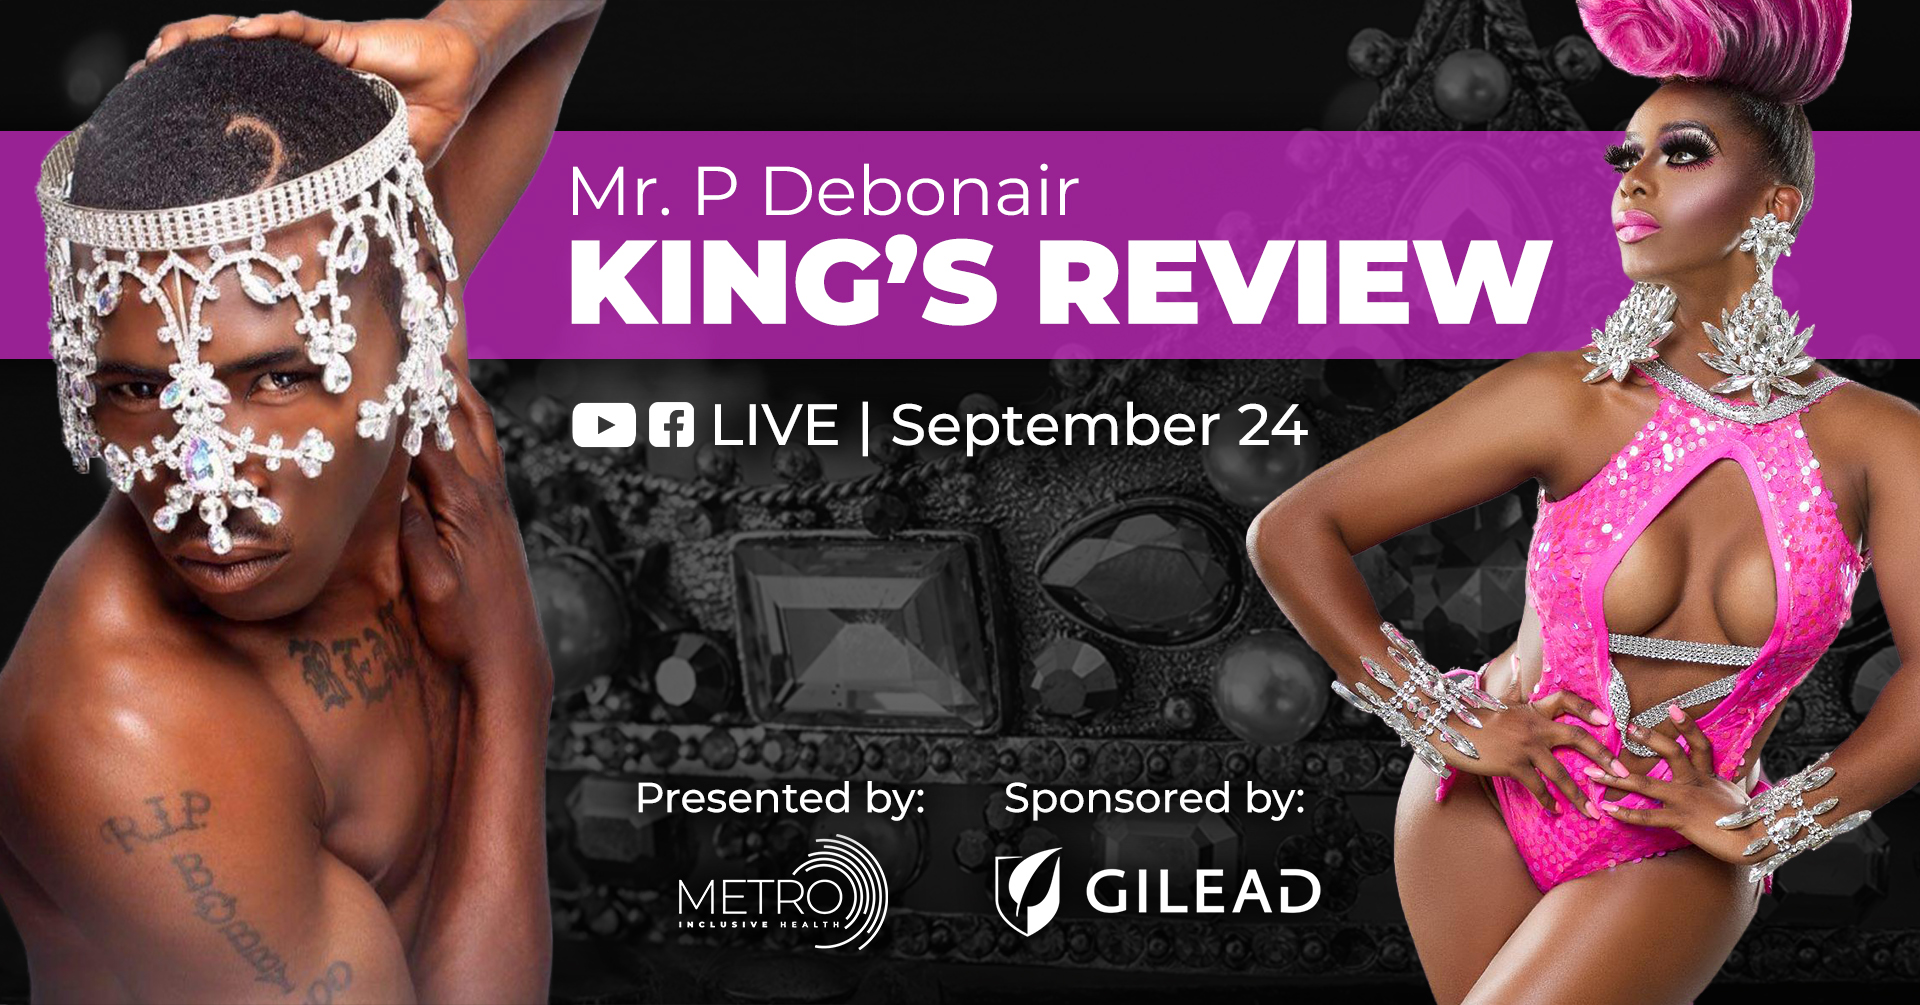 MR P. Debonair King's Review - Sponsored